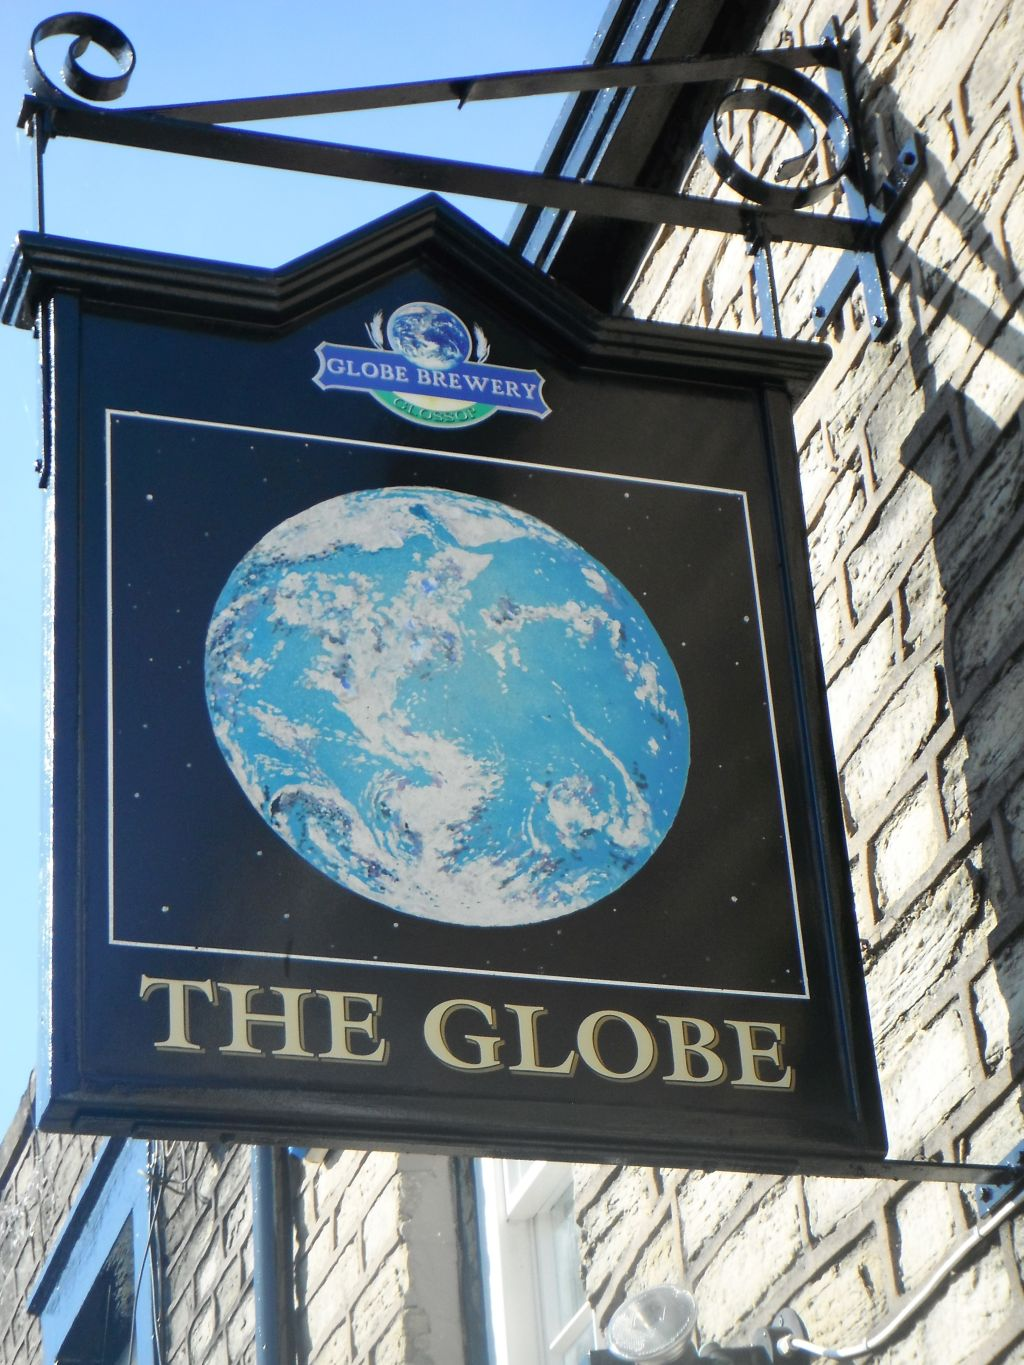 photo taken by me - The Globe pub sign, Glossop, Greater Manchester